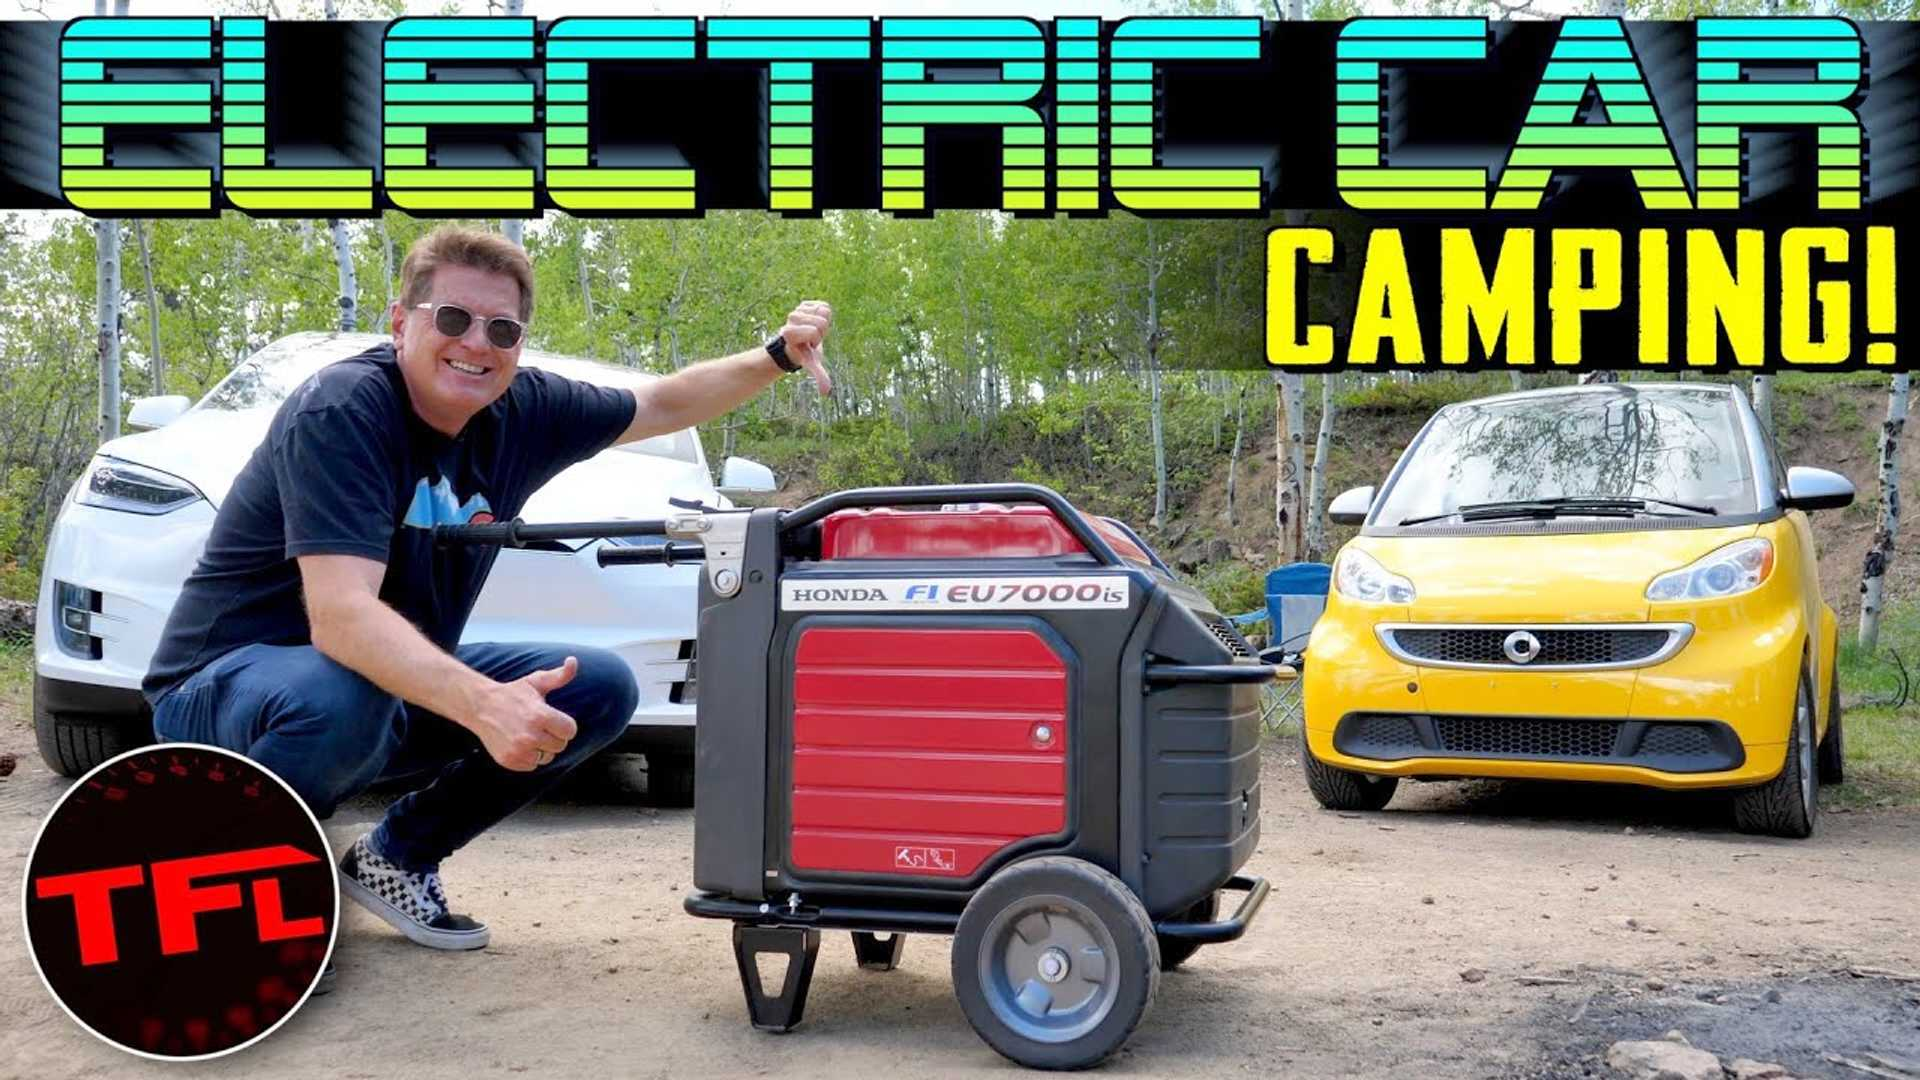 Can You Charge A Tesla Model X Electric Smart Car While Camping